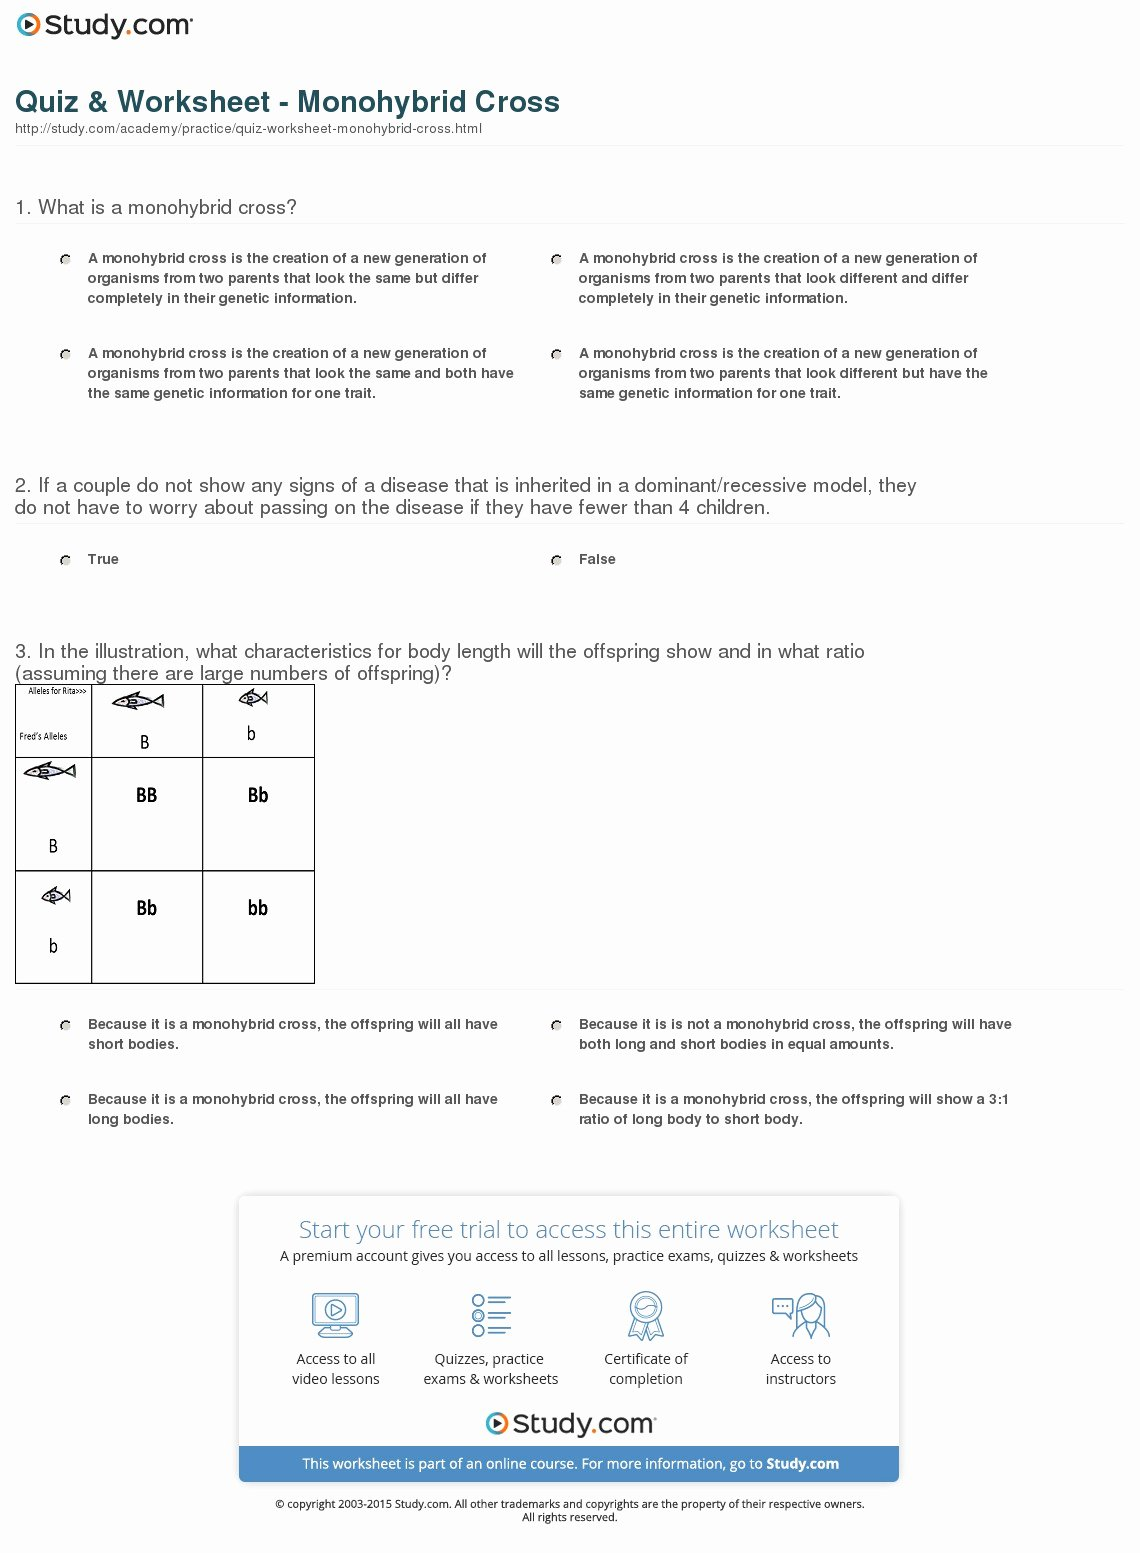 Monohybrid Cross Worksheet Answers Unique Quiz & Worksheet Monohybrid Cross